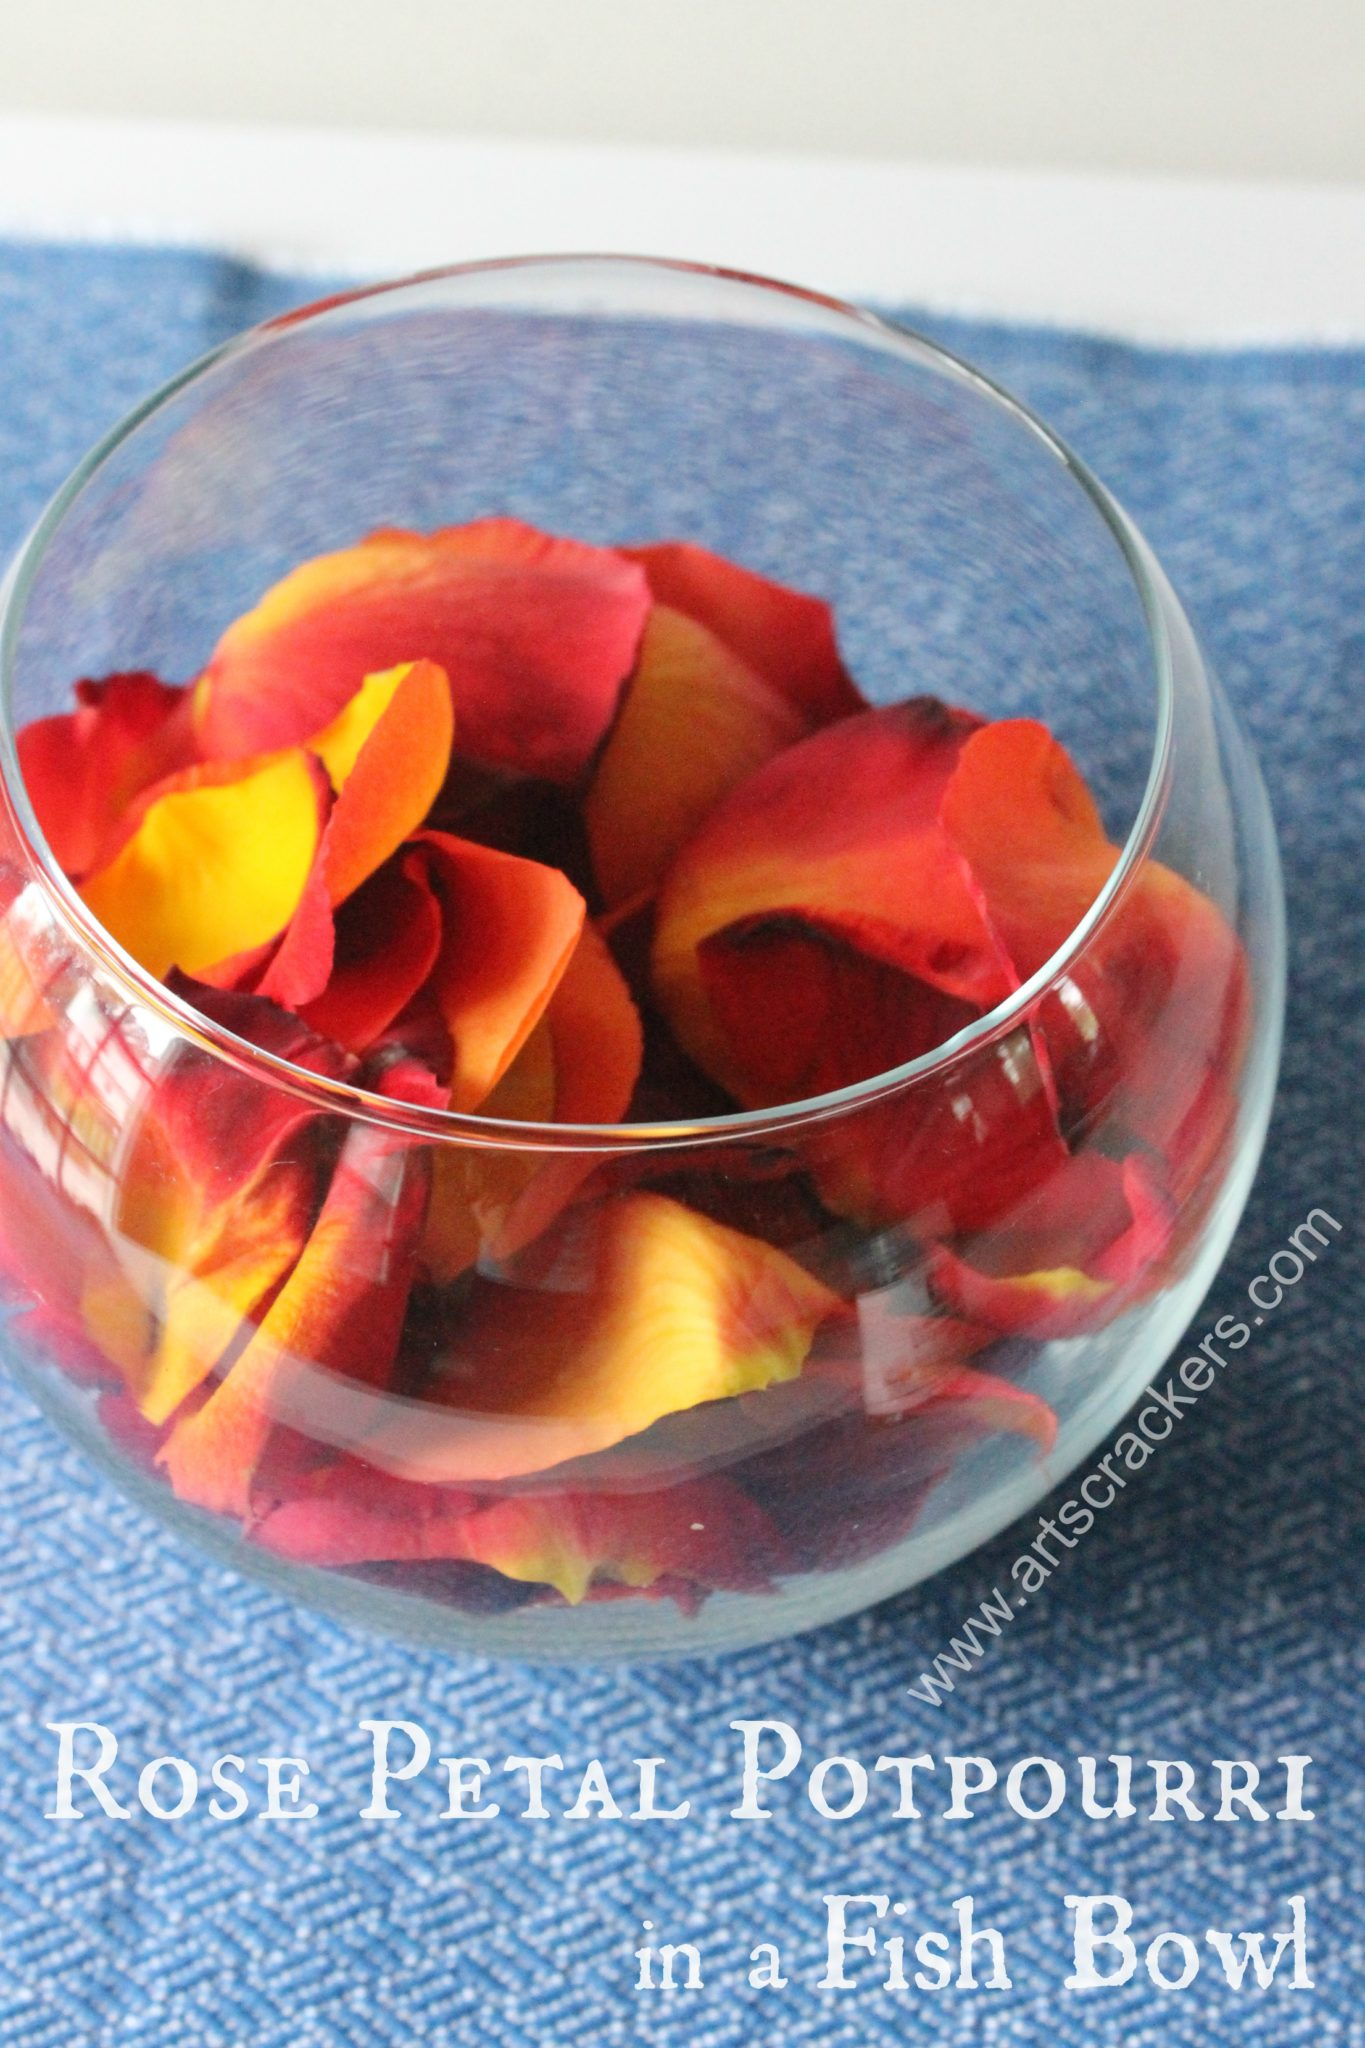 Rose Petal Potpourri in a Fish Bowl